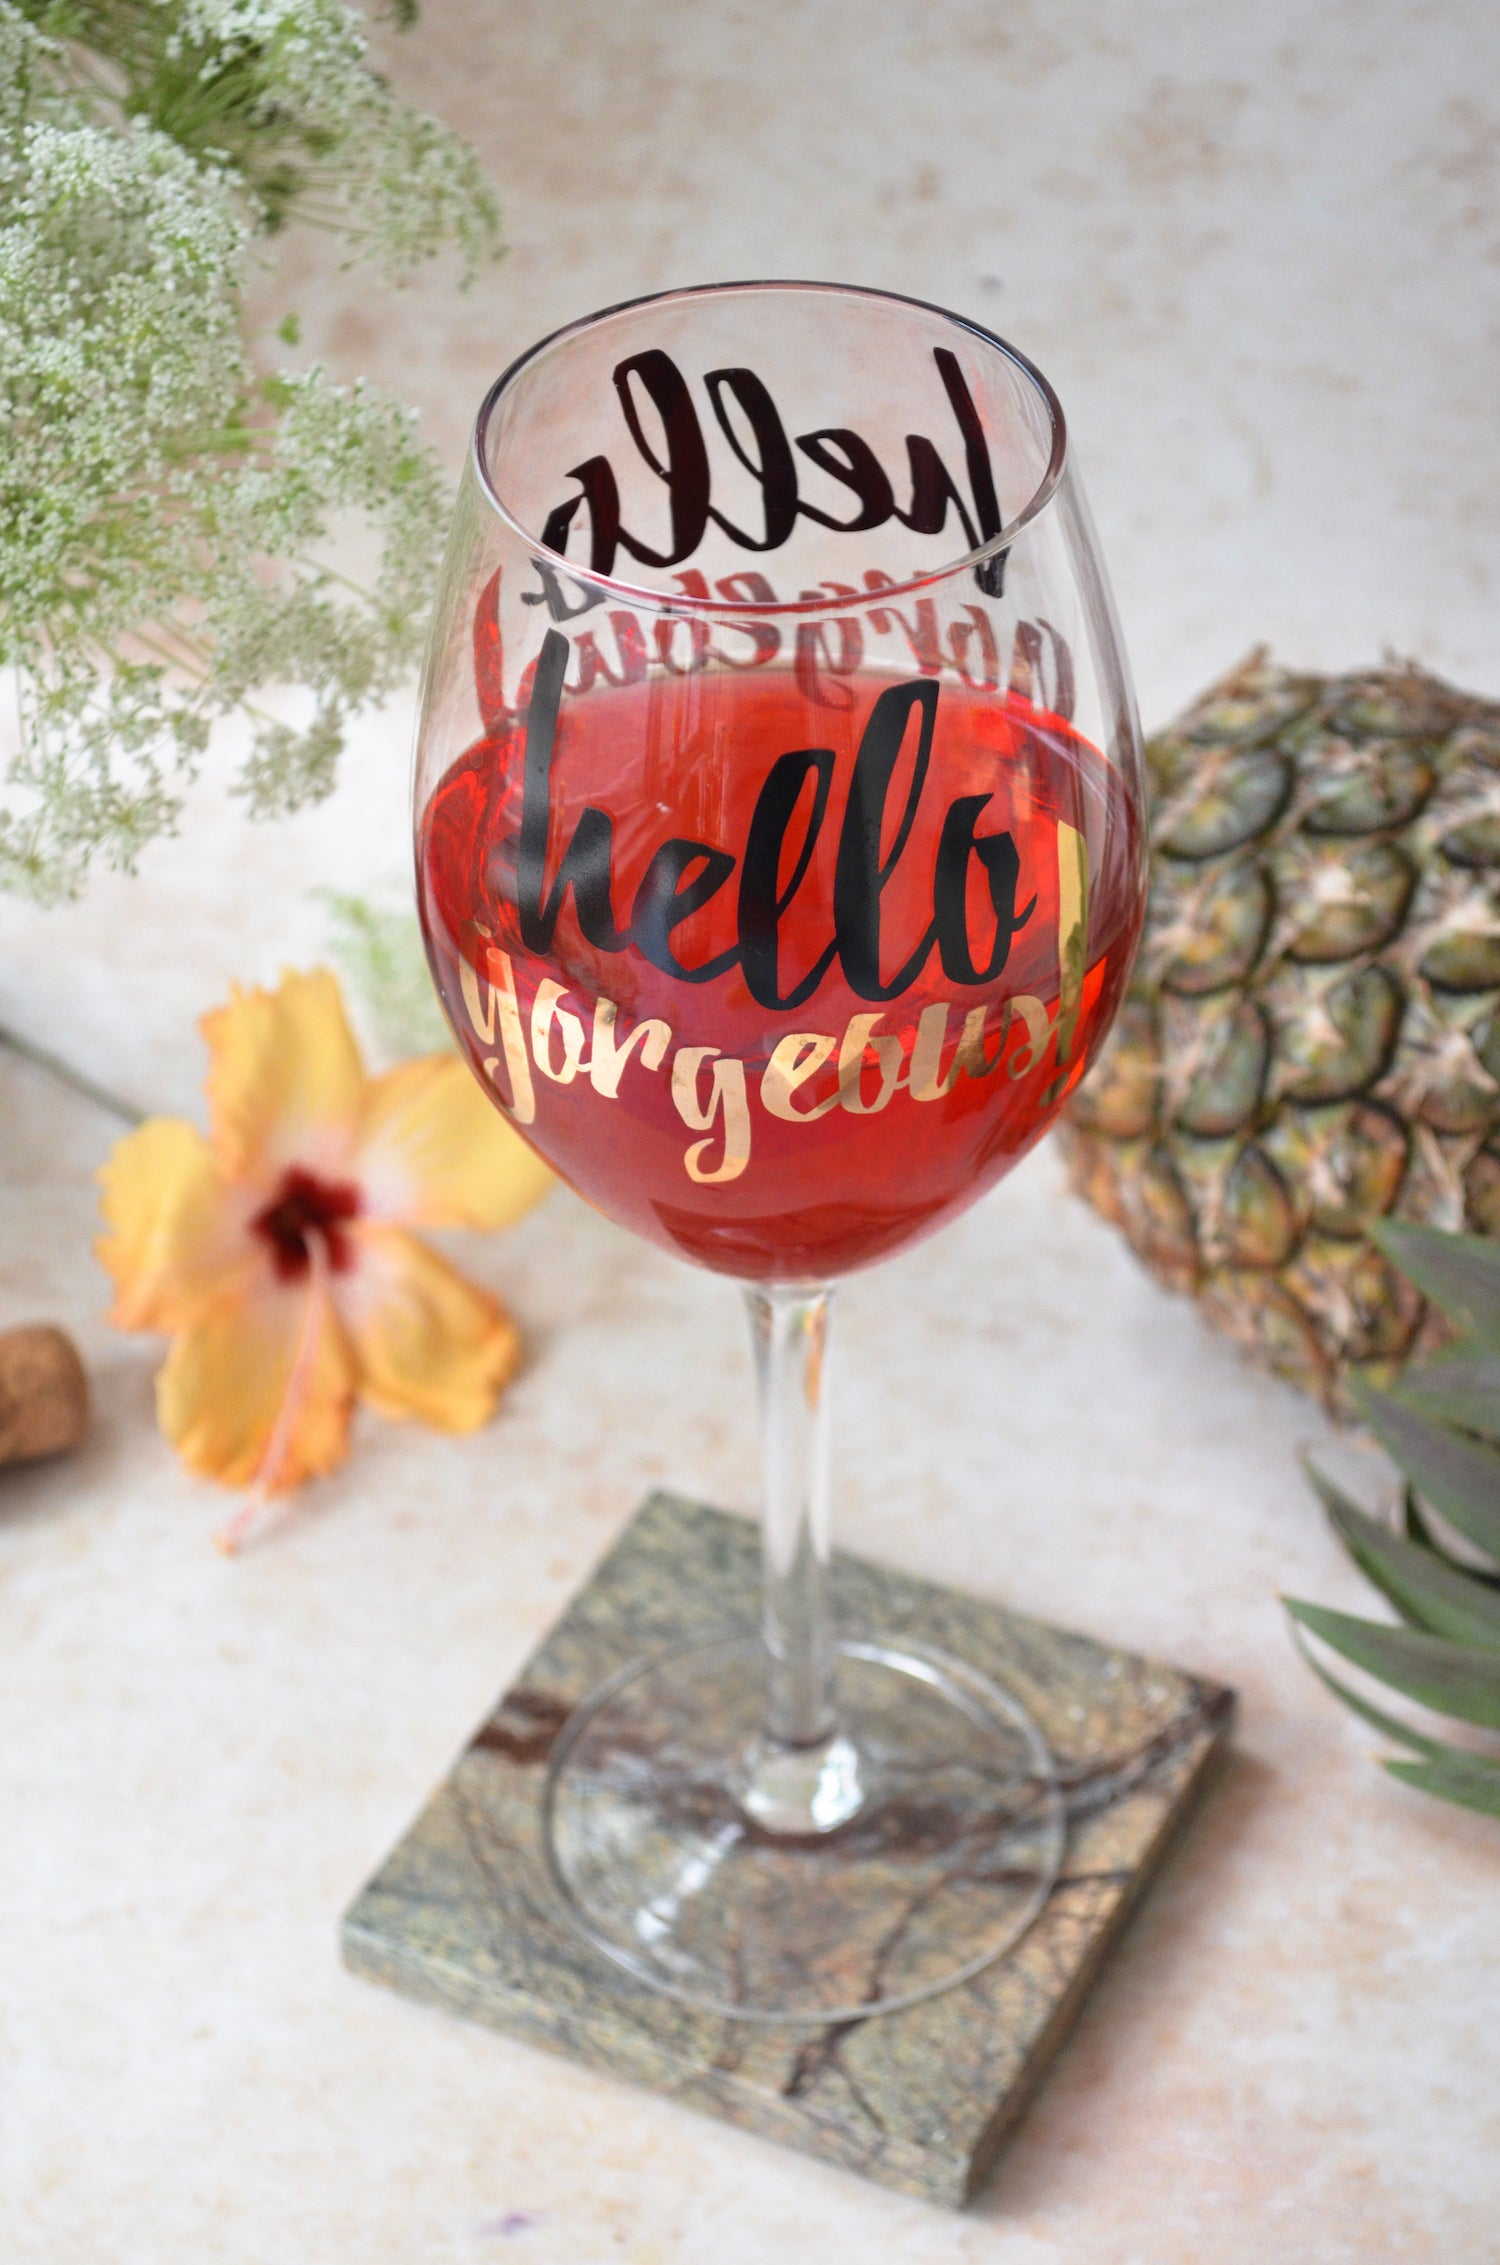 Hello Gorgeous Wine Glass